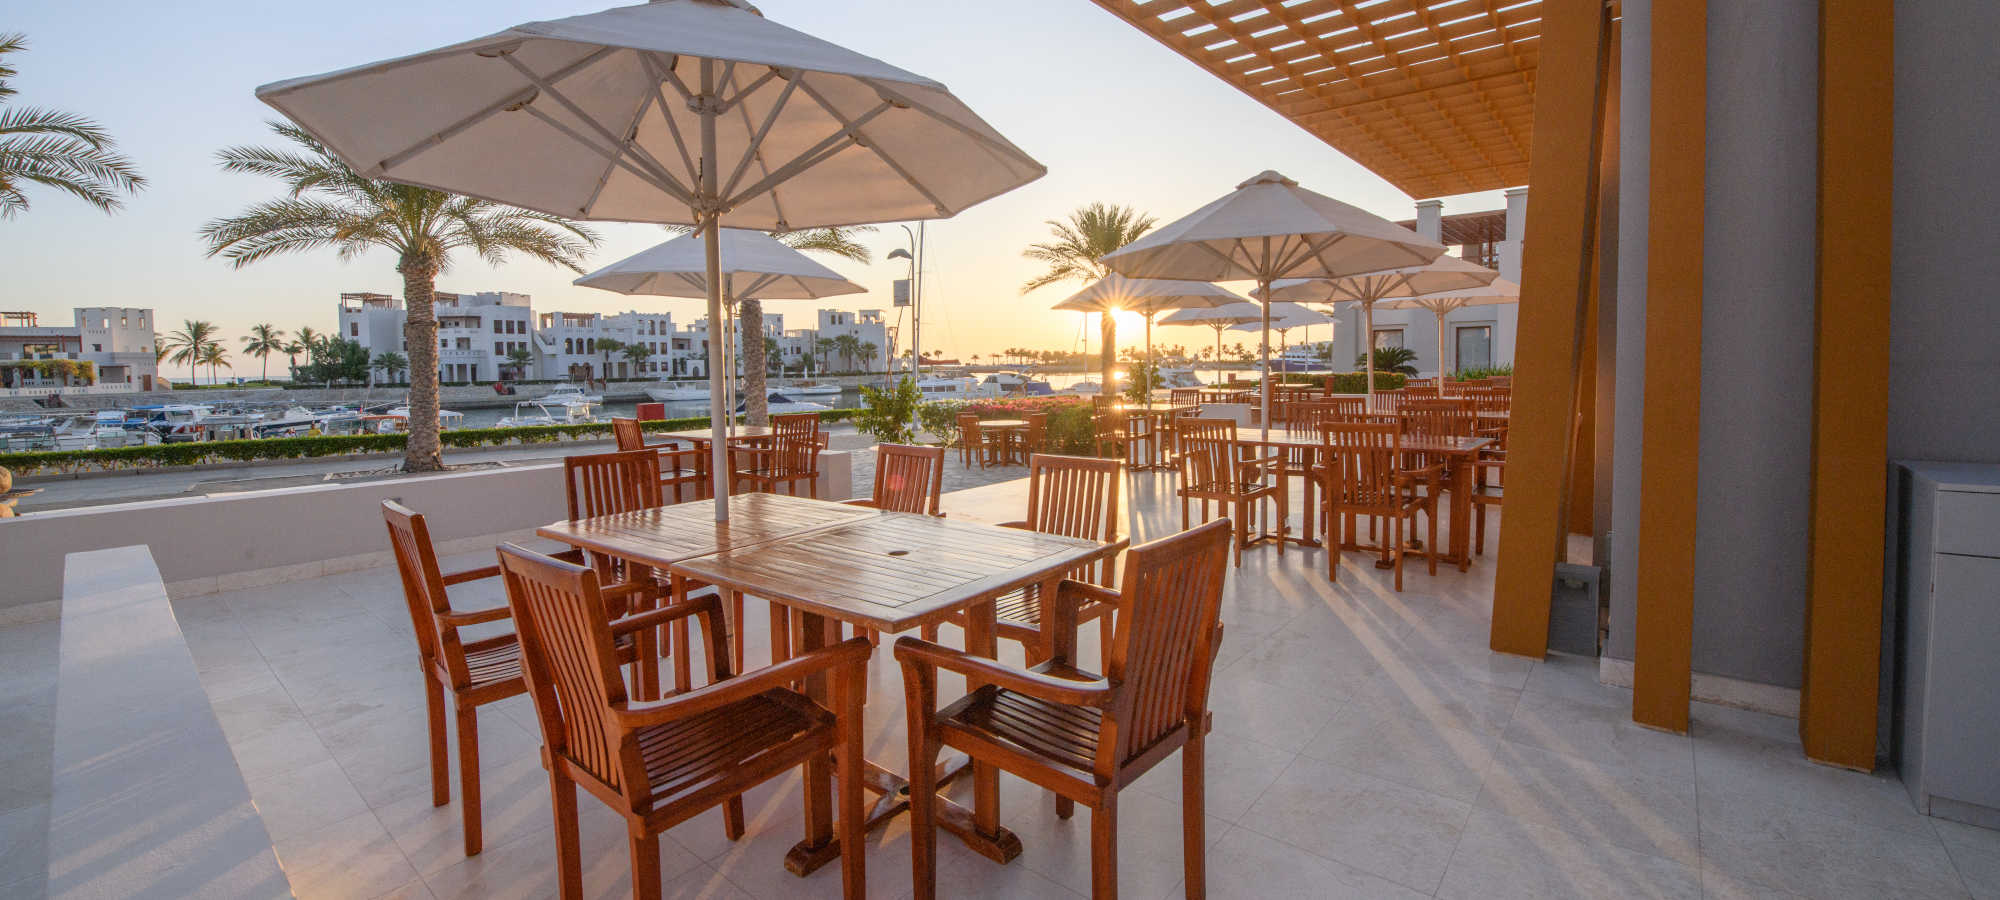 marina view restaurant in sifawy hotel jebel sifah resort with yachts at day view